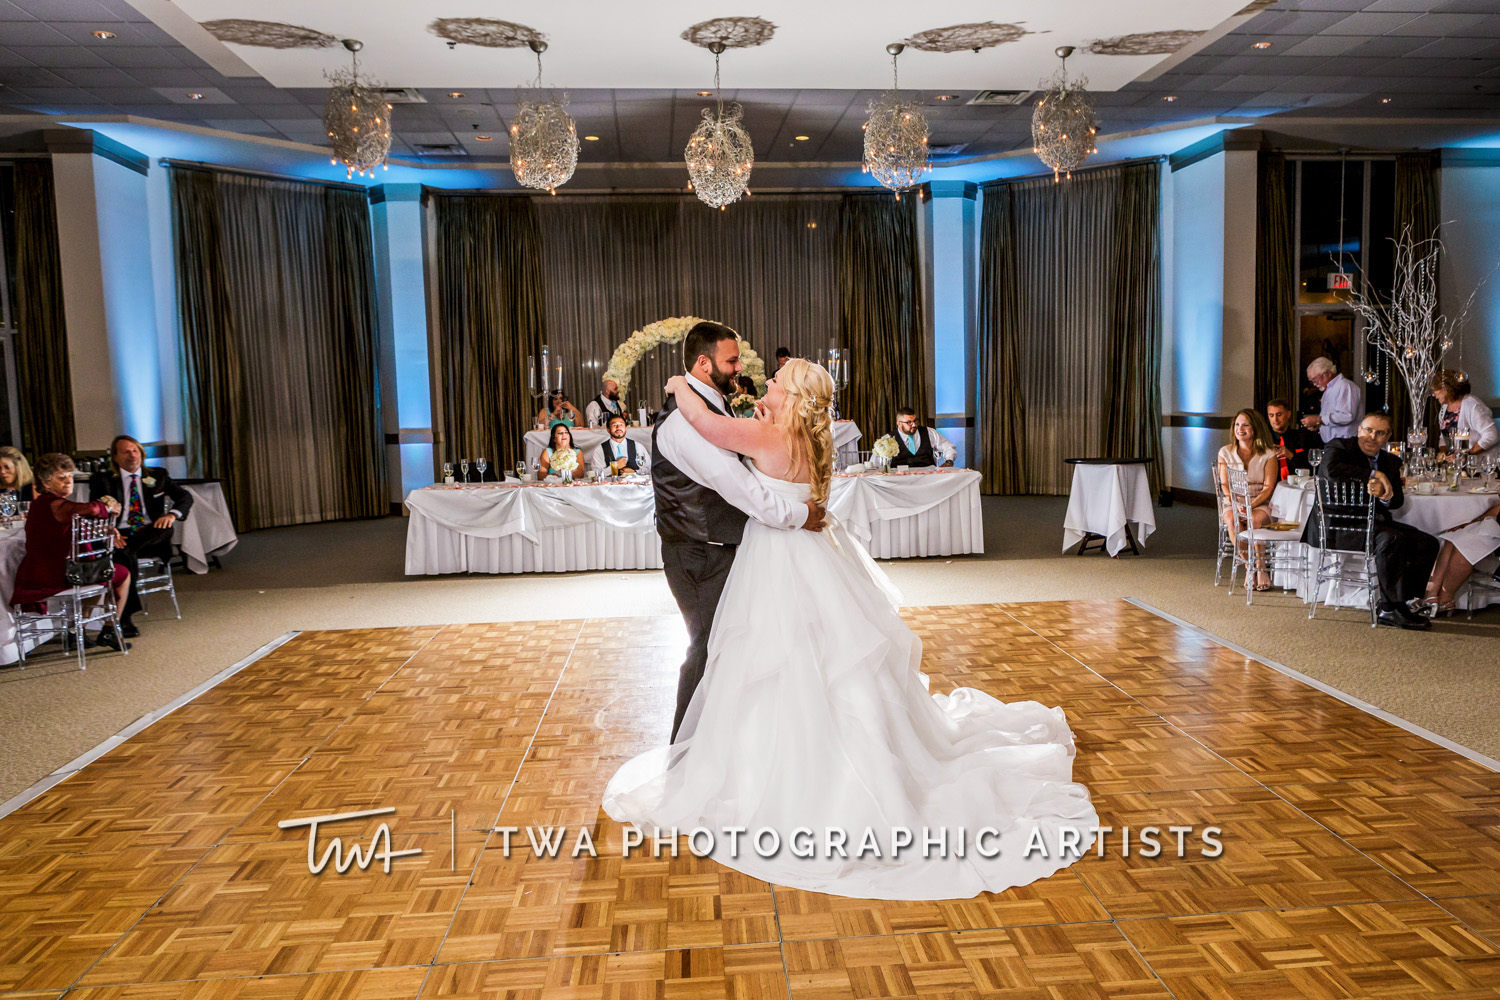 Chicago Wedding Photographers | Weddings at Belvedere Events & Banquets | TWA Photographic Artists